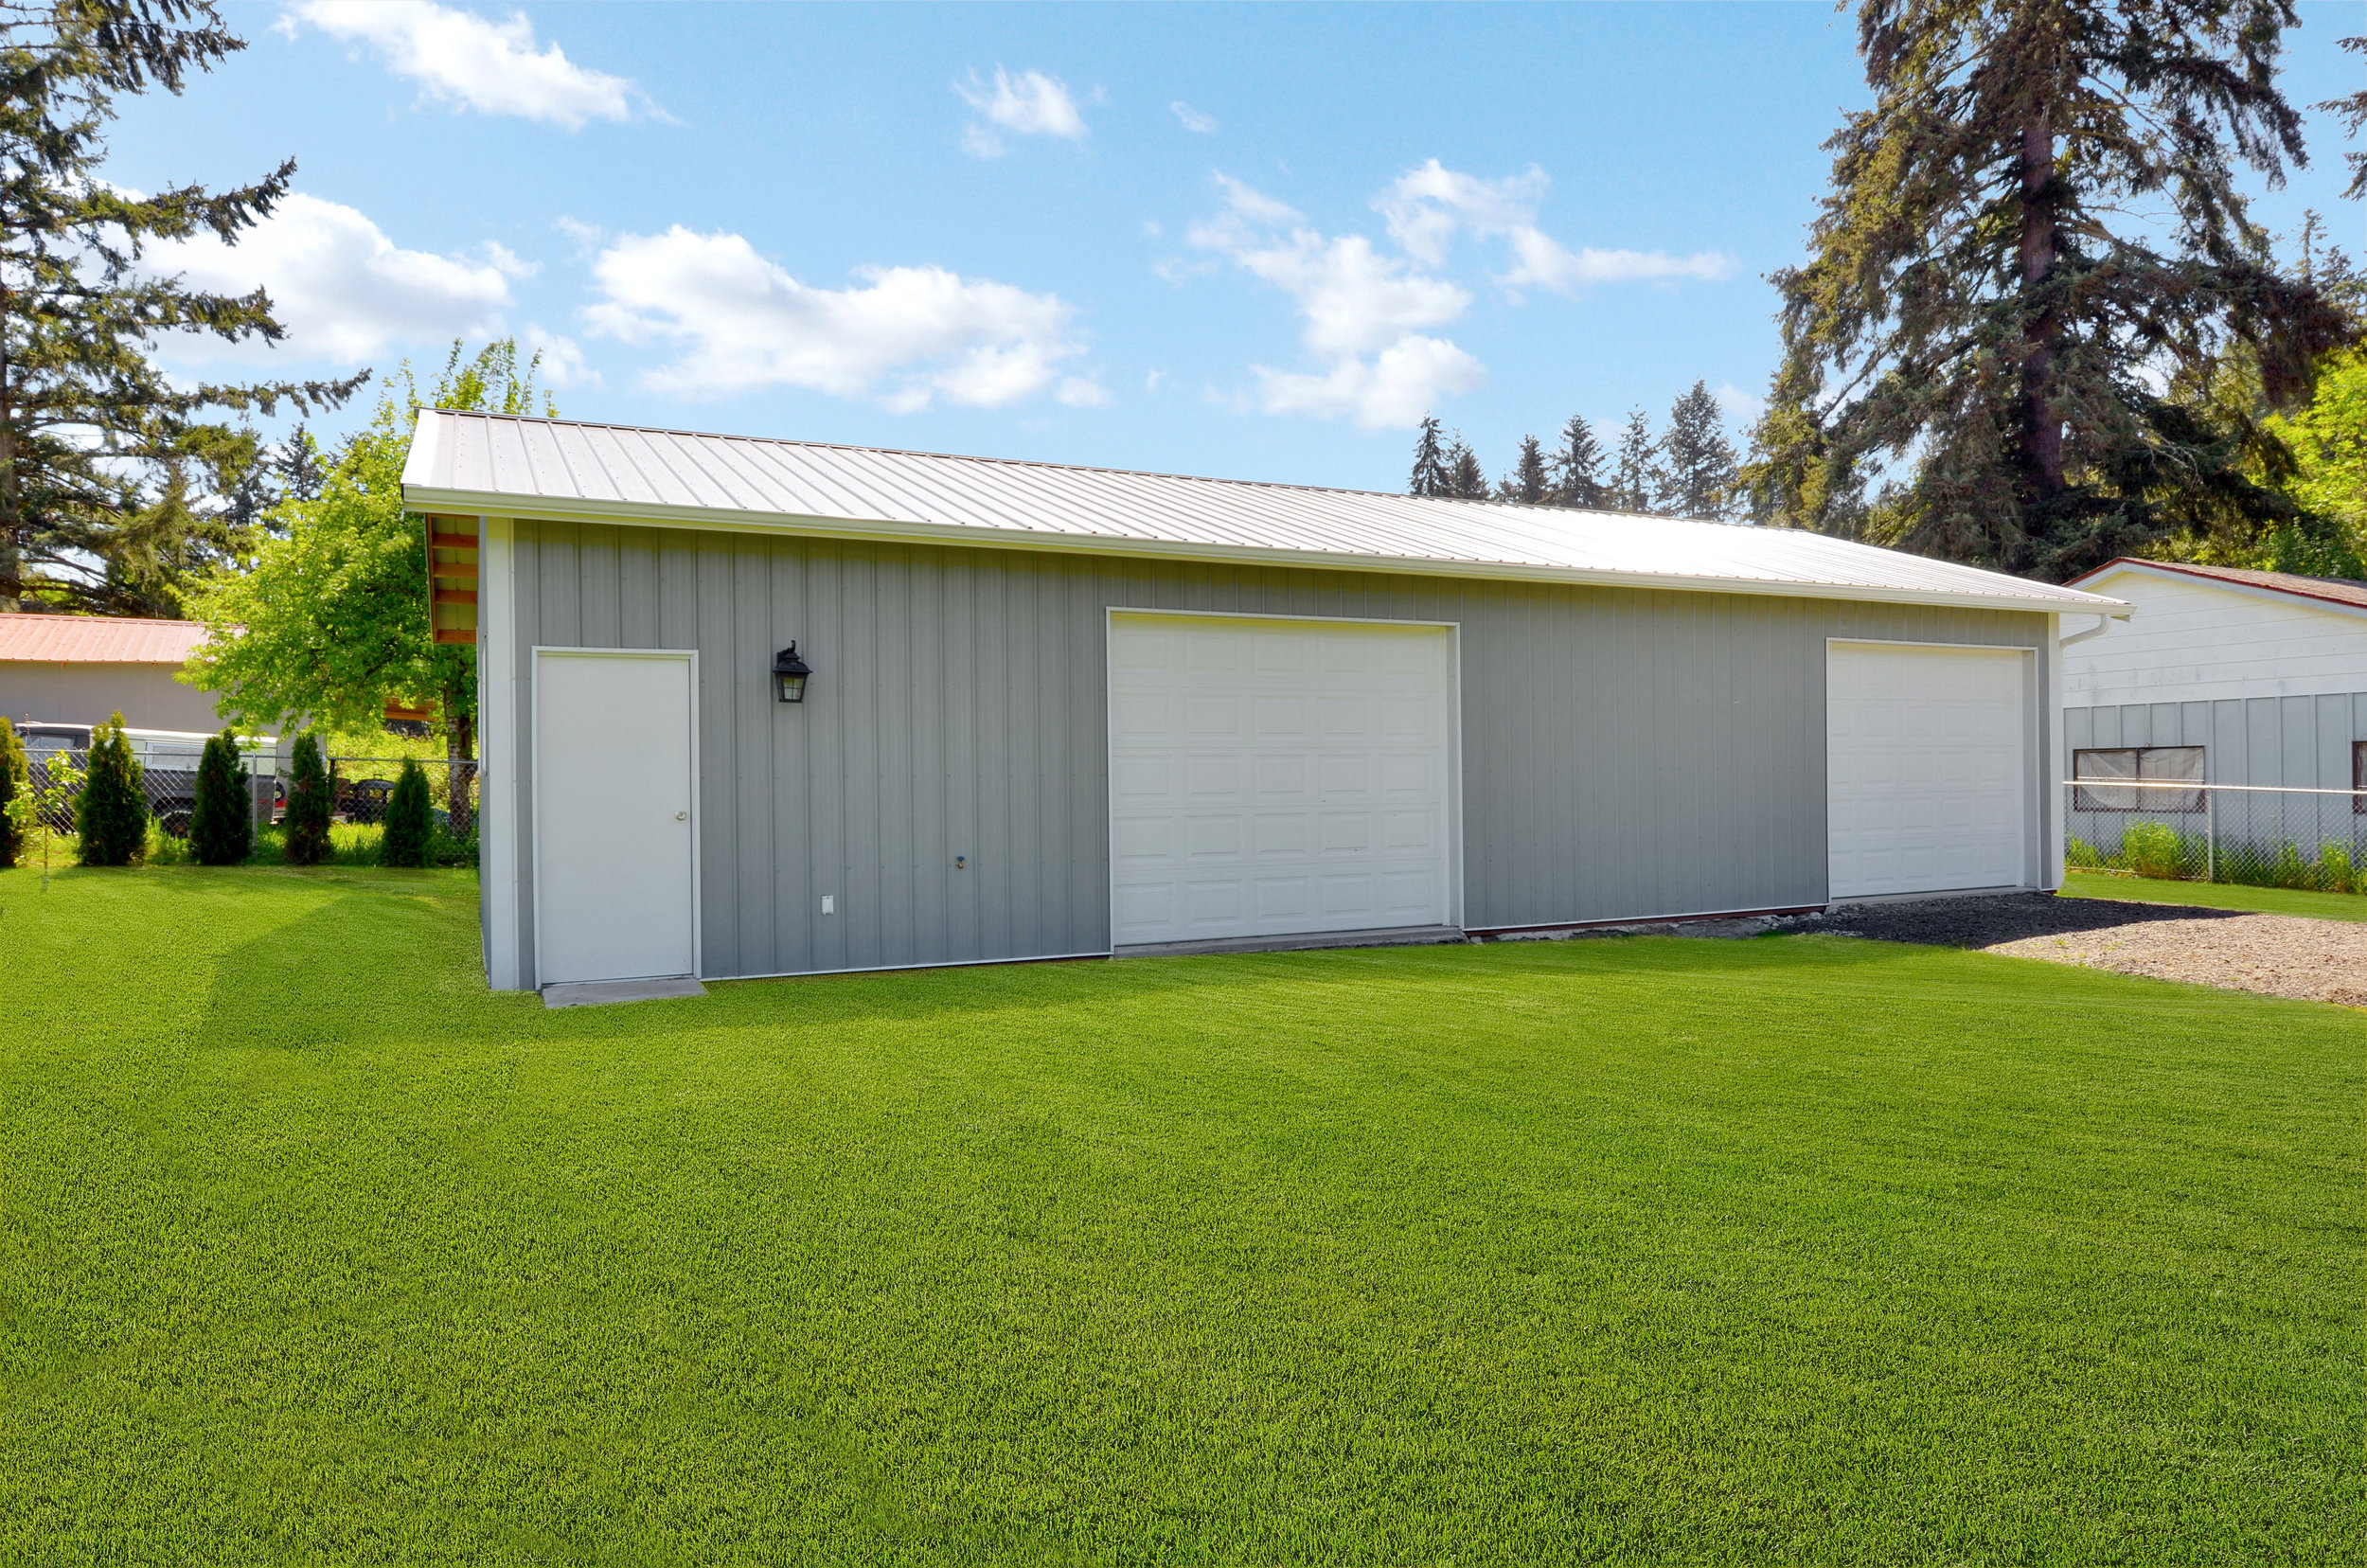 This new 24 x 48 workshop was built in 2017/2018. As you can see, there are 2 bay doors, so plenty of potential for parking vehicles, boats, or other equipment as well as lots of workshop space.